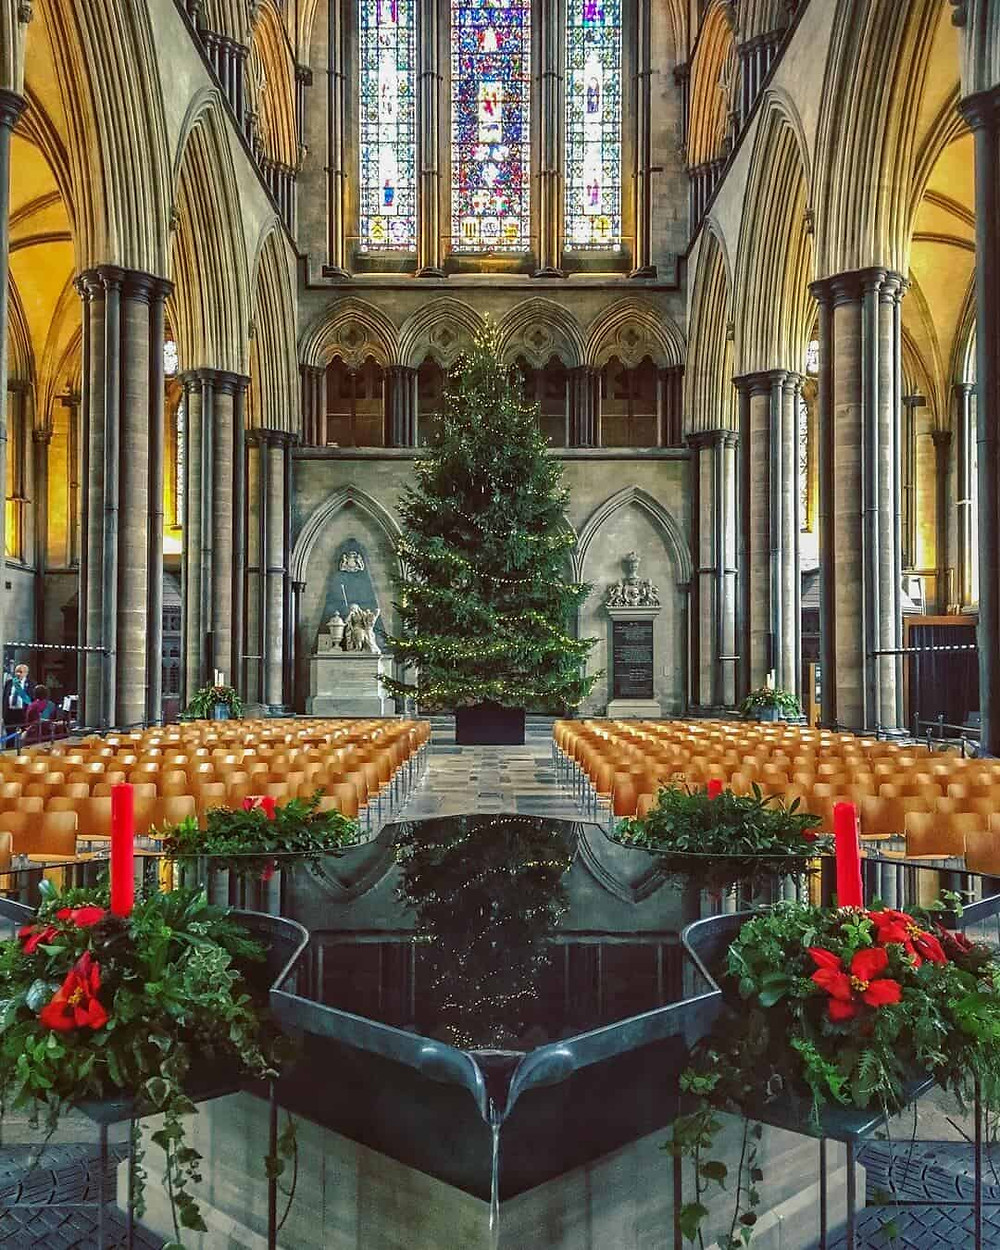 The font in Salisbury Cathedral with a Christmas tree behind it.